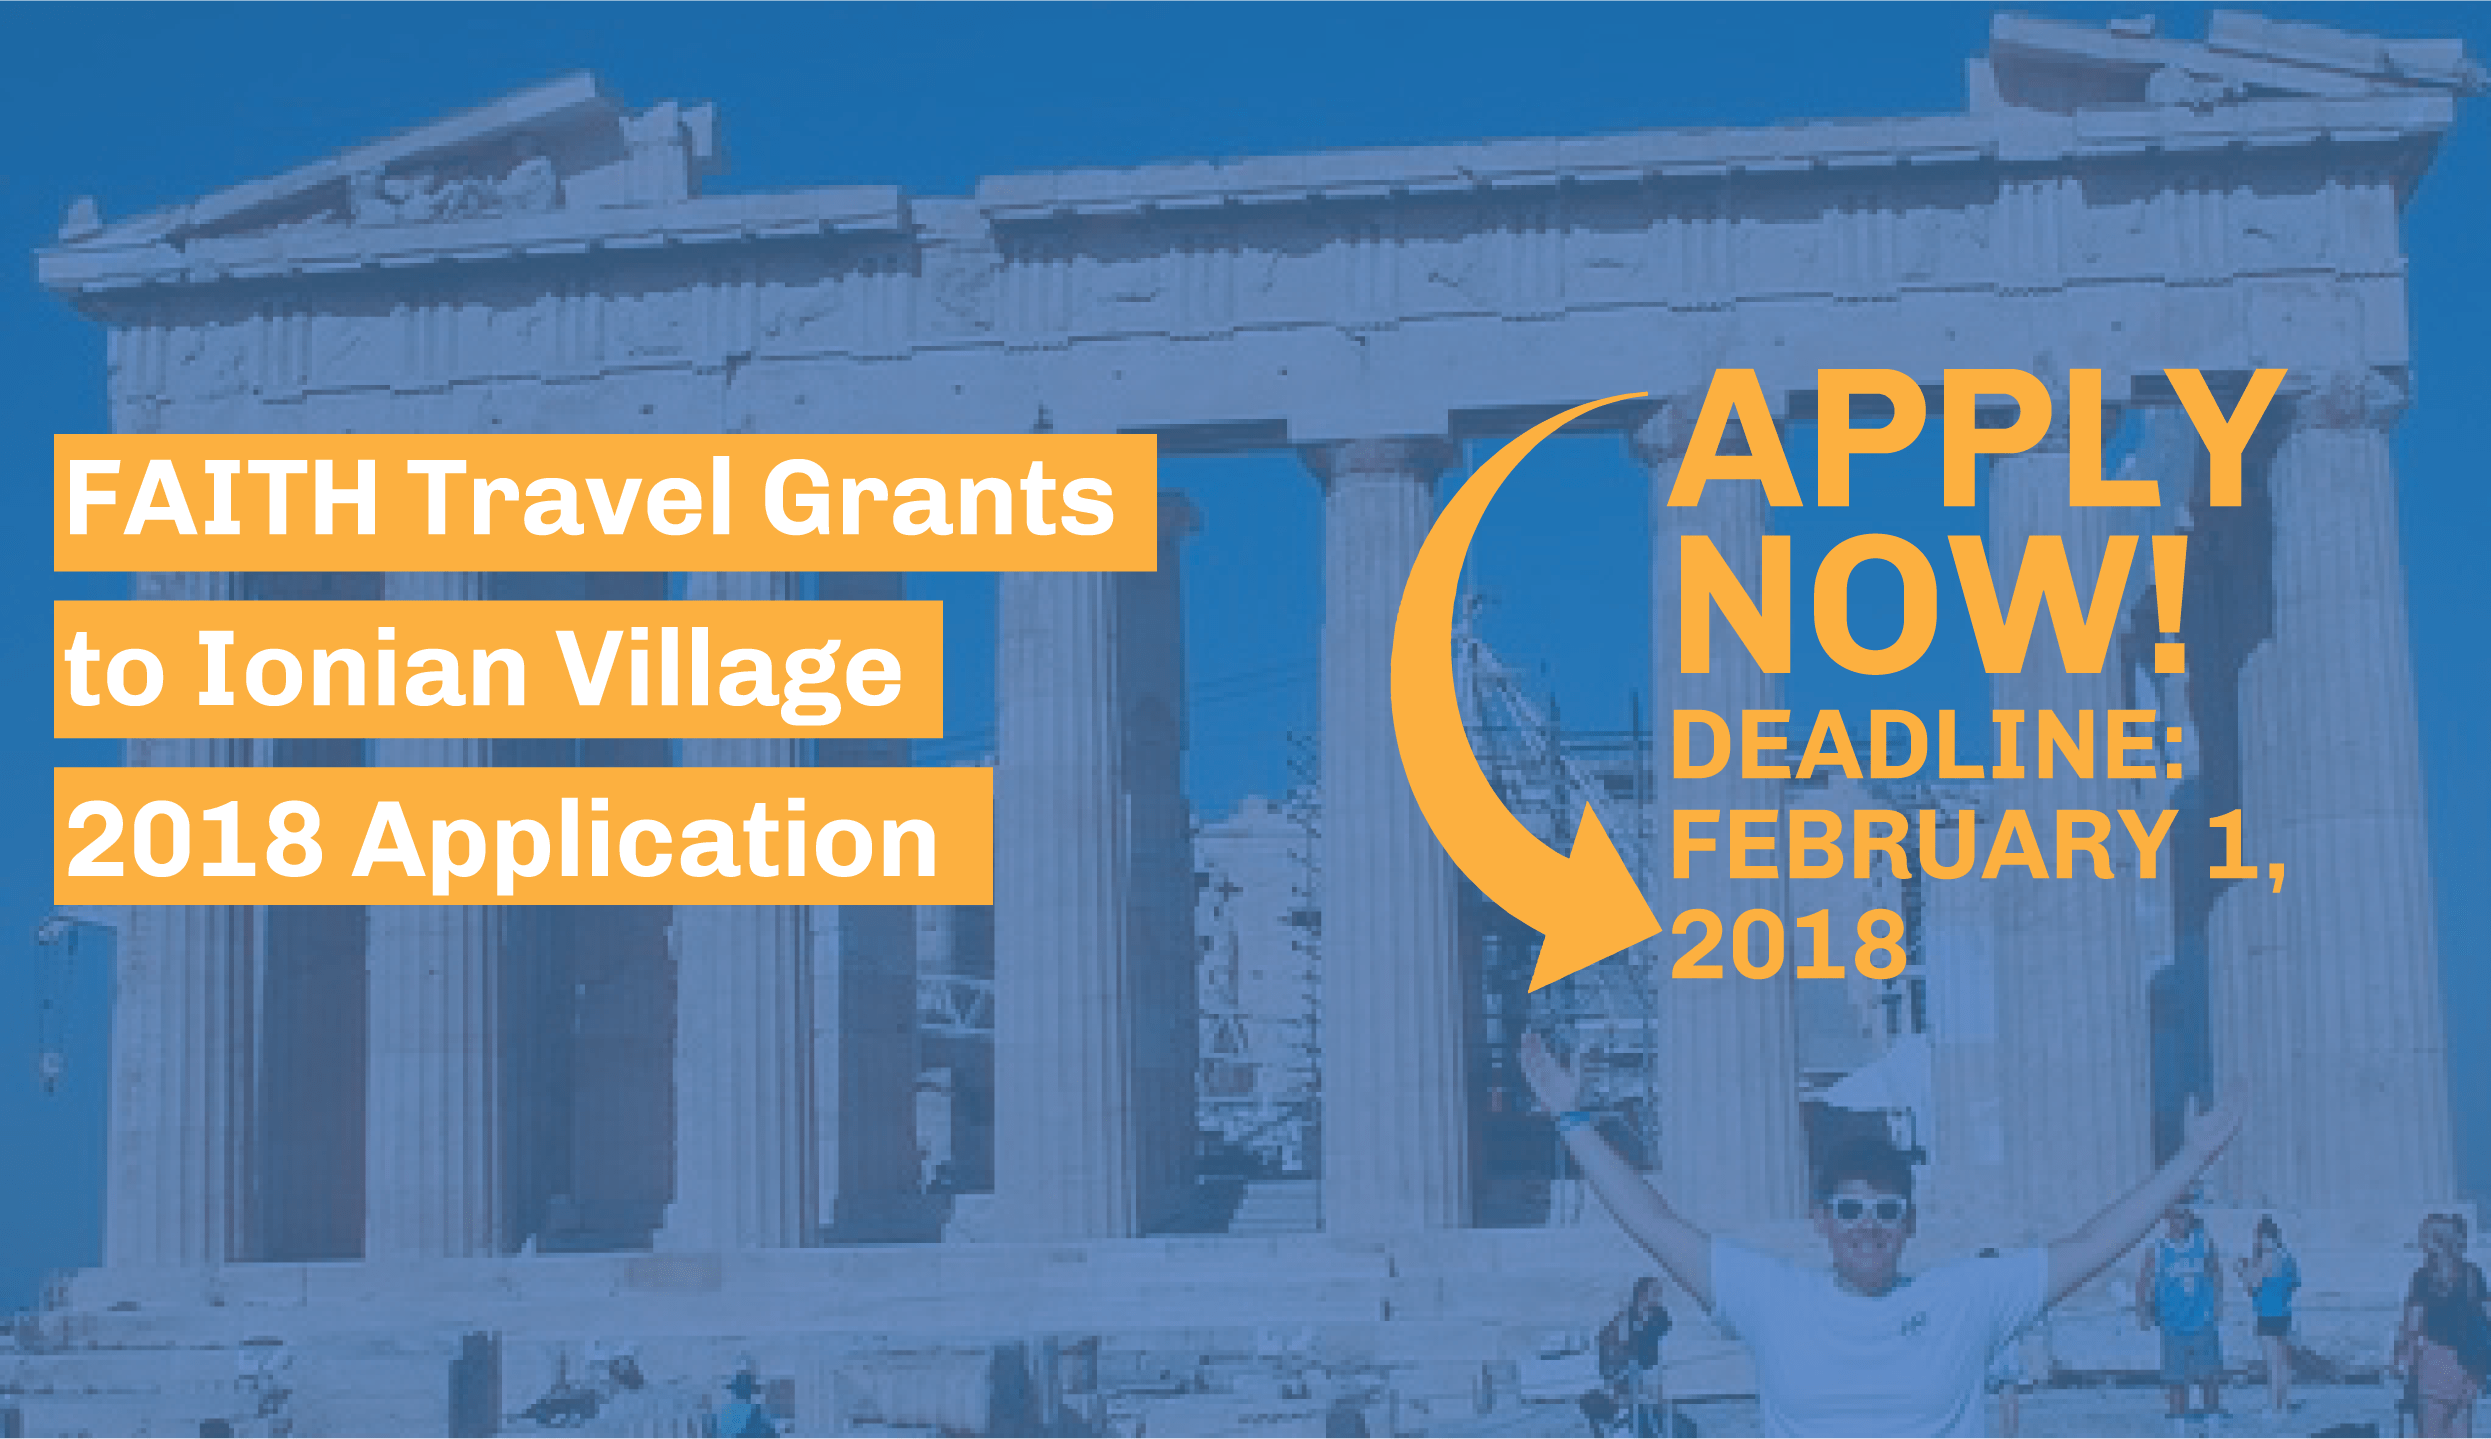 The 2018 FAITH Travel Grant to Ionian Village application is now available!